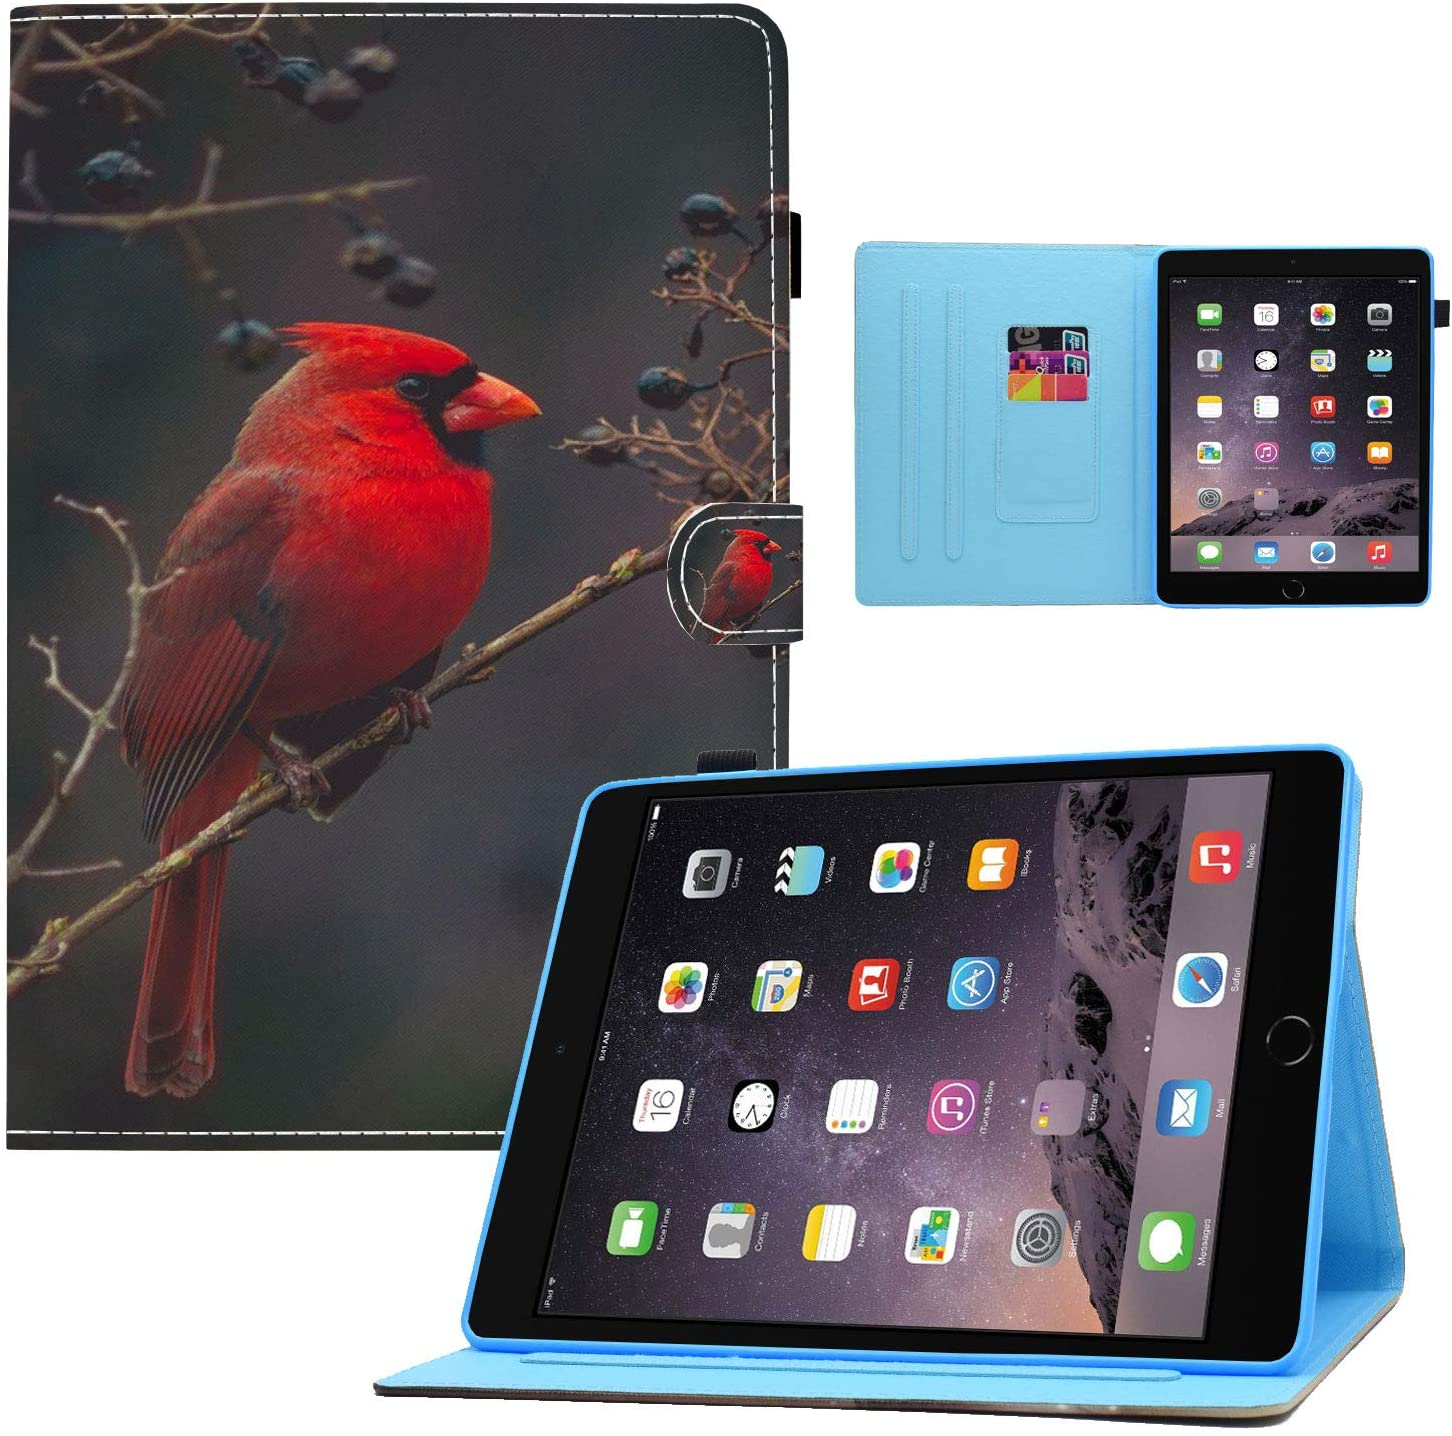 iPad 9.7 2018 2017/iPad Air 2/iPad Air Case,Red Cardinal Bird Design Card Slot PU Leather Soft TPU Protective Case with Pen Holder Auto Wake Sleep for iPad 6th / 5th Gen, iPad Air 1/2